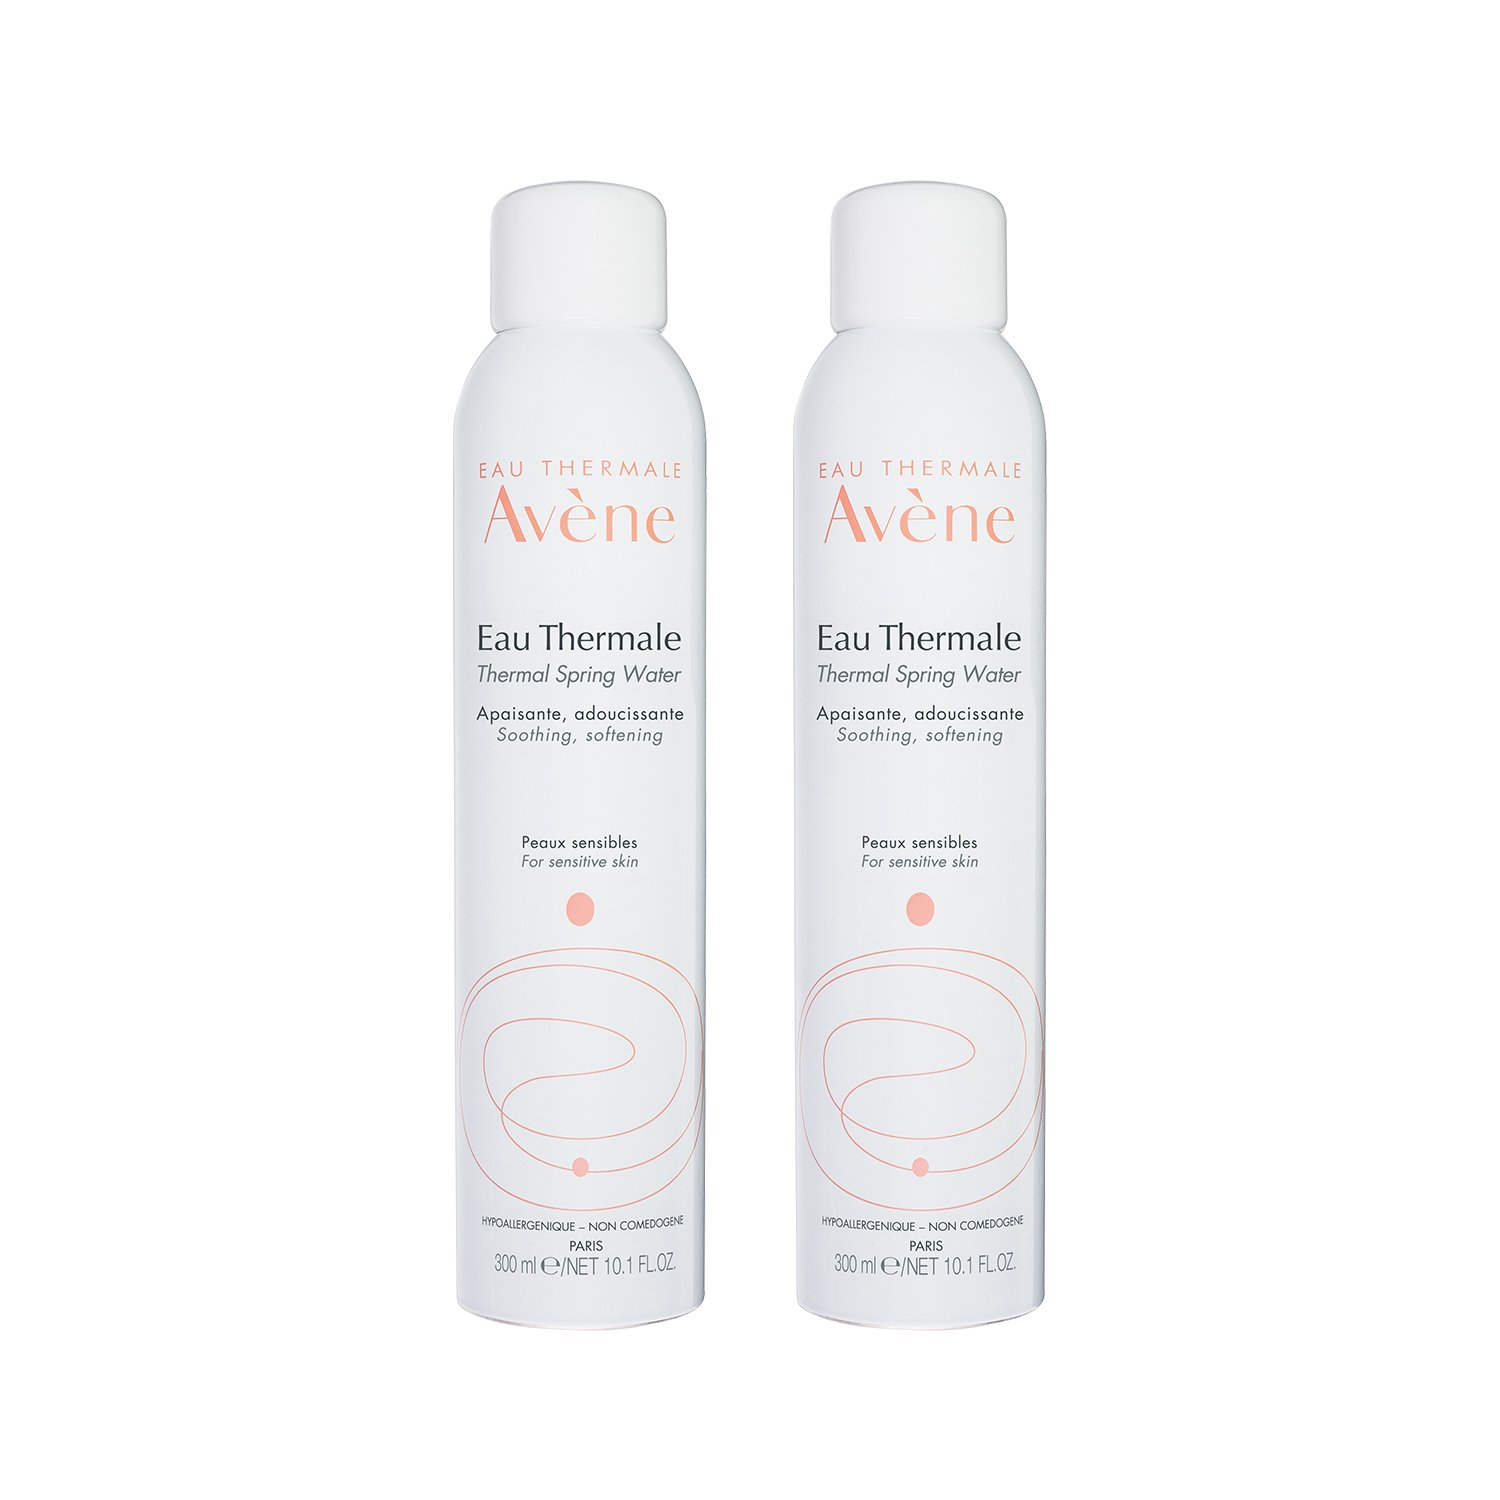 Eau Thermale Avene Thermal Spring Water, Soothing Calming Facial Mist Spray Duo, 10.1 oz., Set of 2